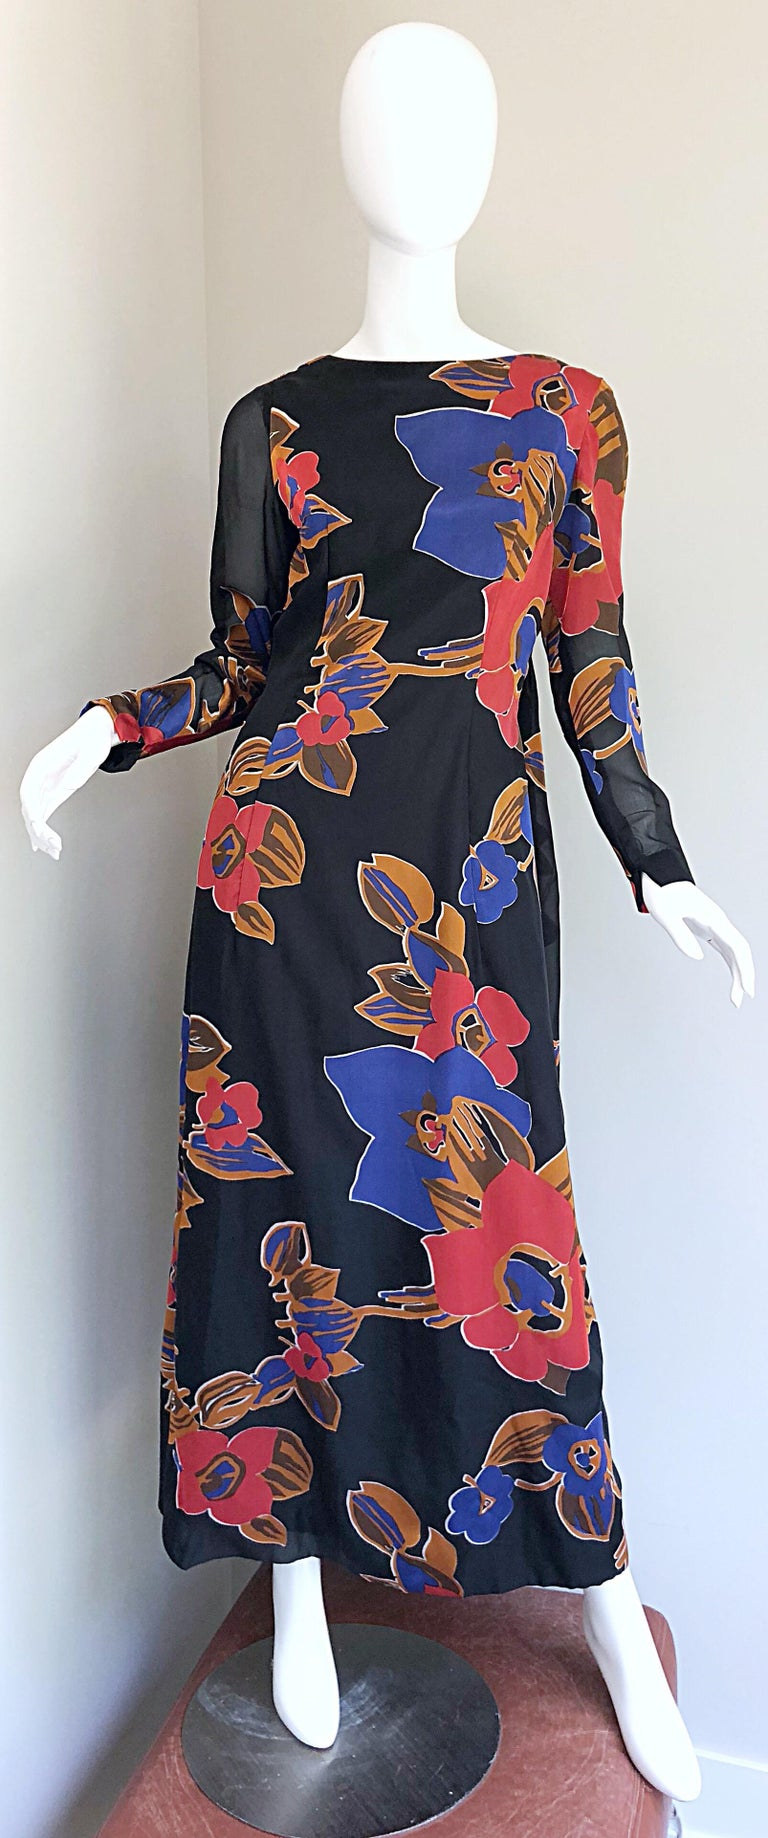 Fabulous 1960s JOHN BOYLE BISHOP black, red and terra cotta brown silk trained gown! Features an elegant high neck with a dramatic cape-like train in the back. Semi sheer patterned sleeves. Full metal zipper up the back with hook-and-eye closure.